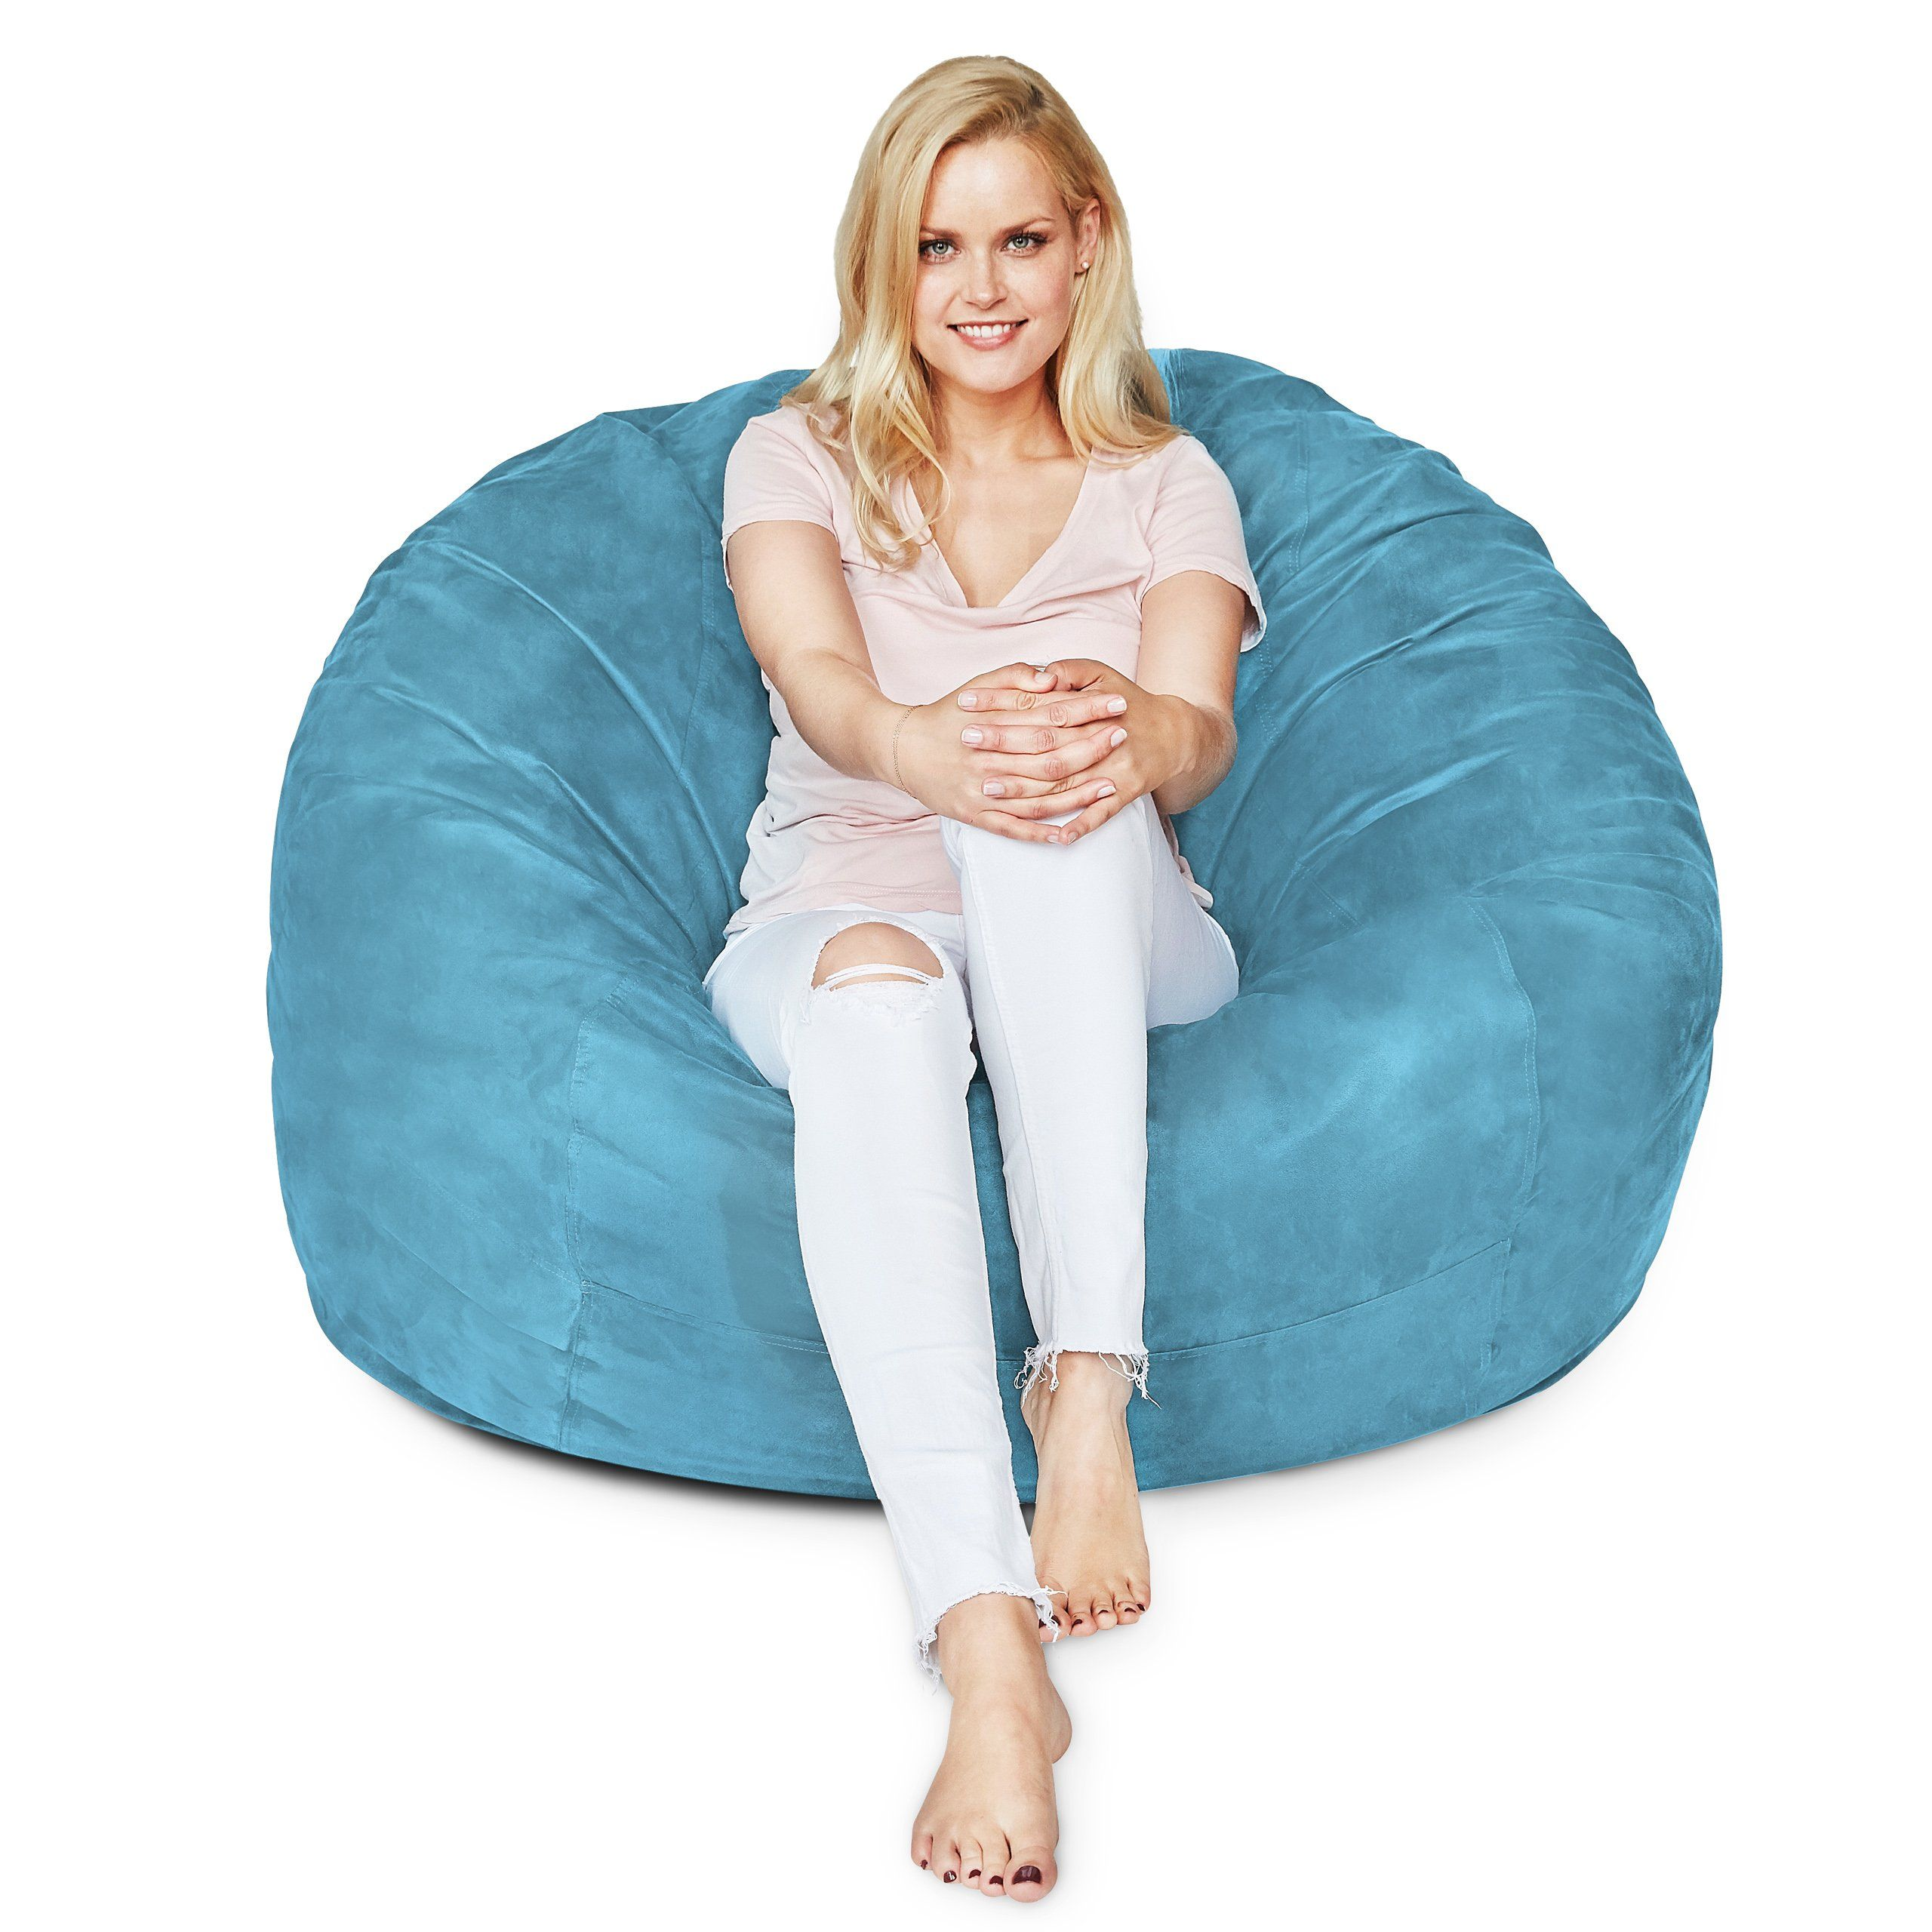 Lumaland Luxury 4foot Bean Bag Chair With Microsuede Cover Light